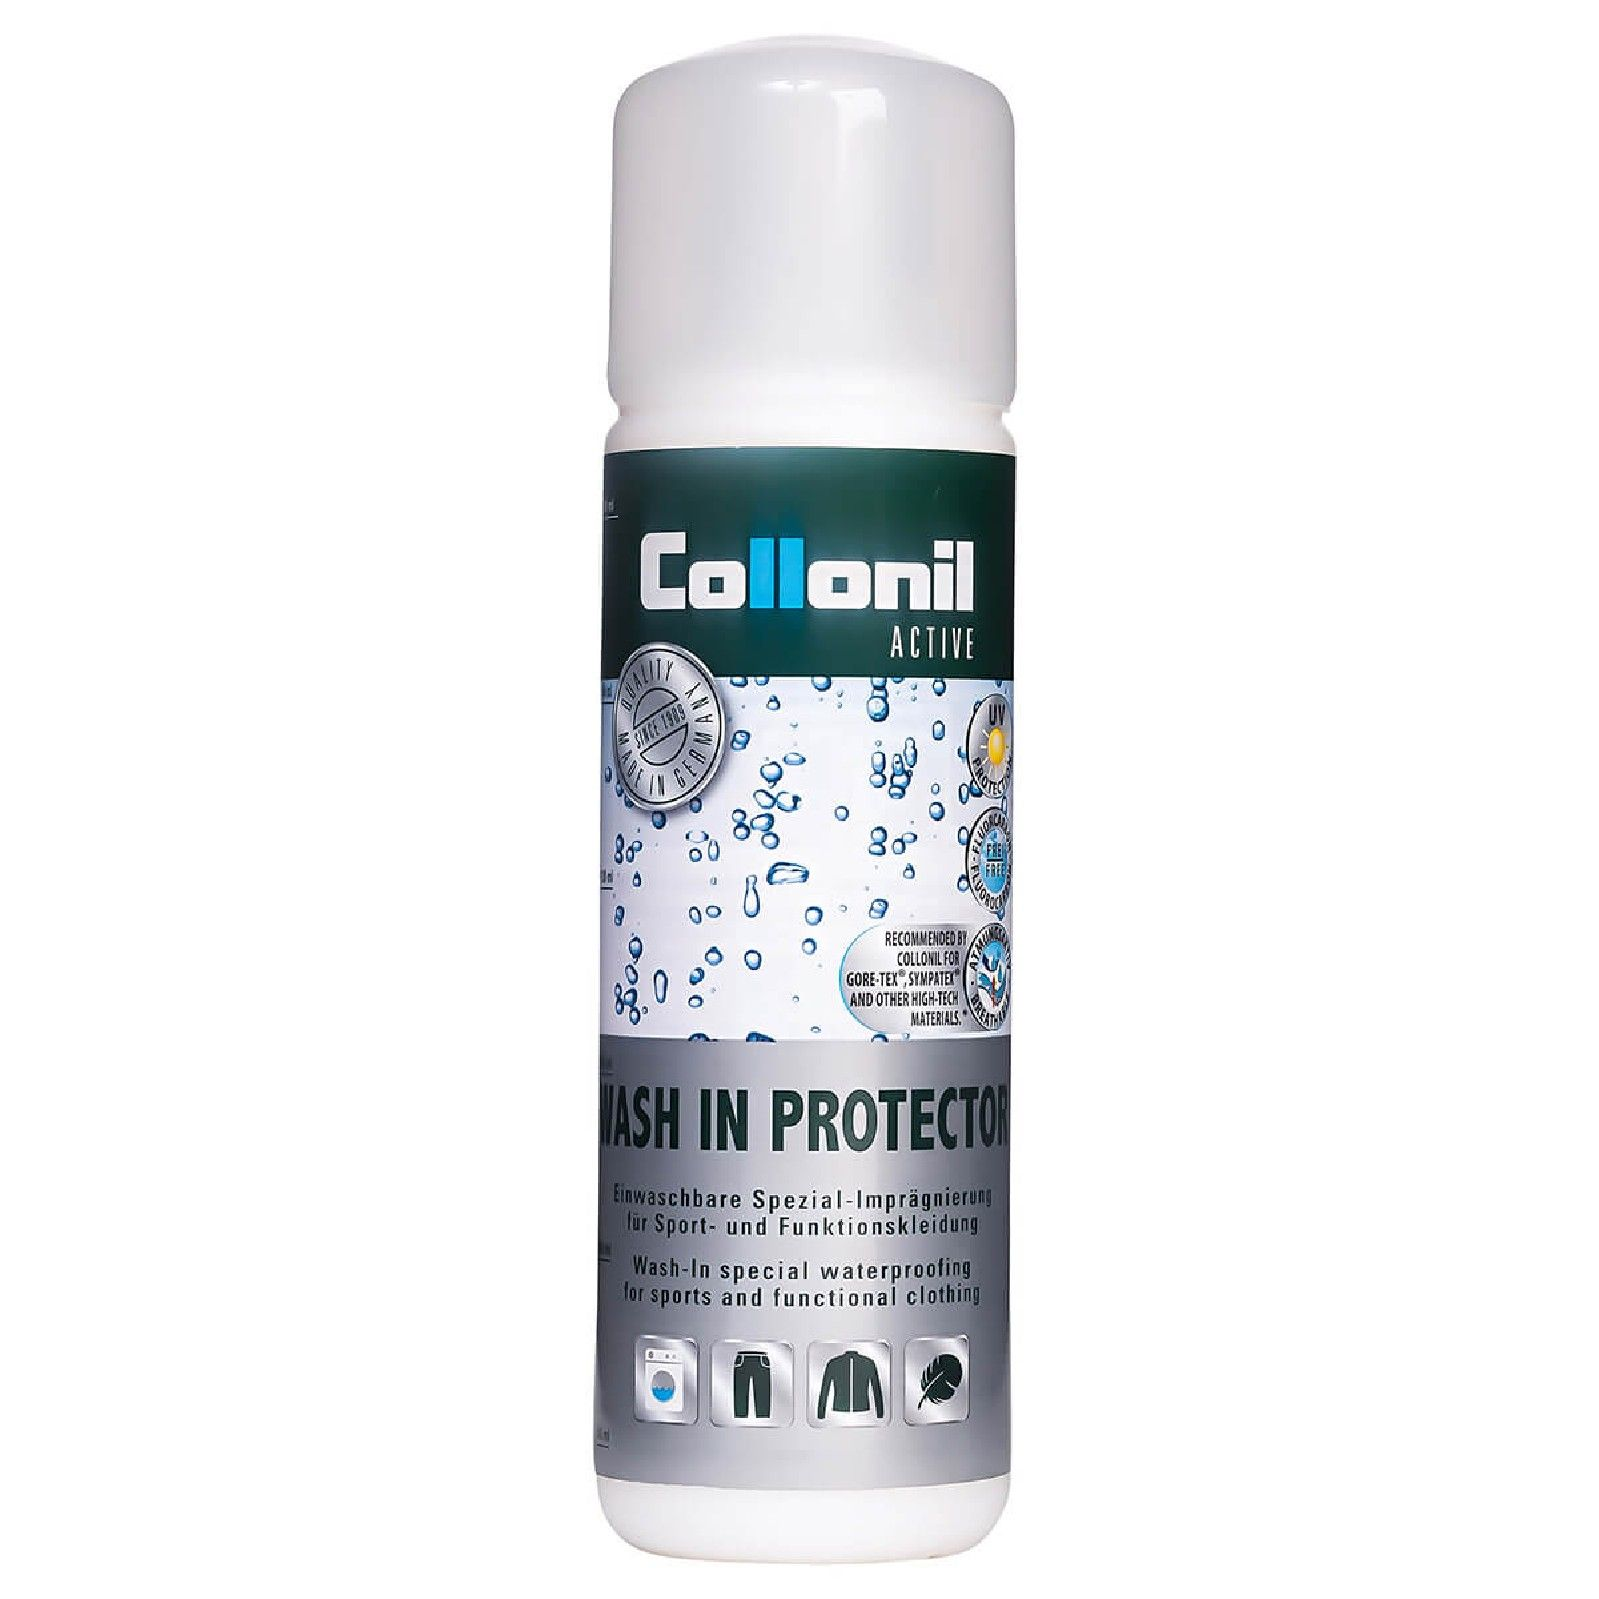 Barefoot Collonil Activ Wash in Protector 250 ml bosá